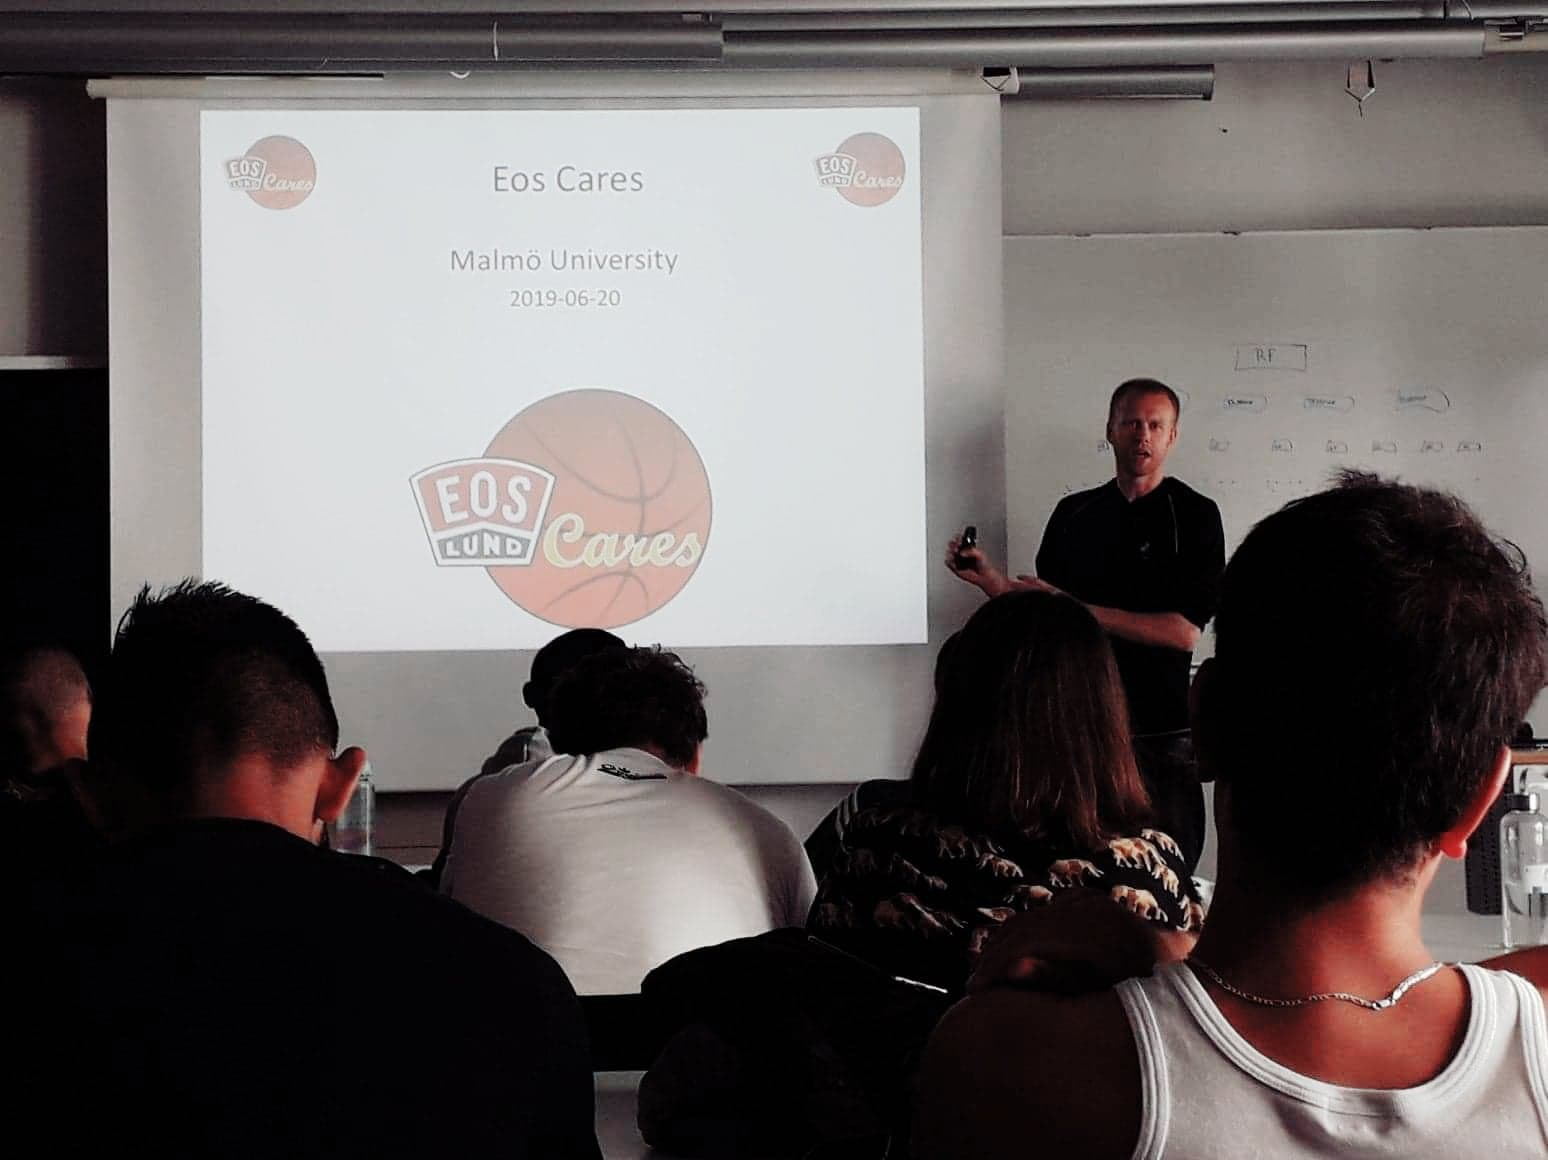 Axel talked about how Eos Cares started and grew